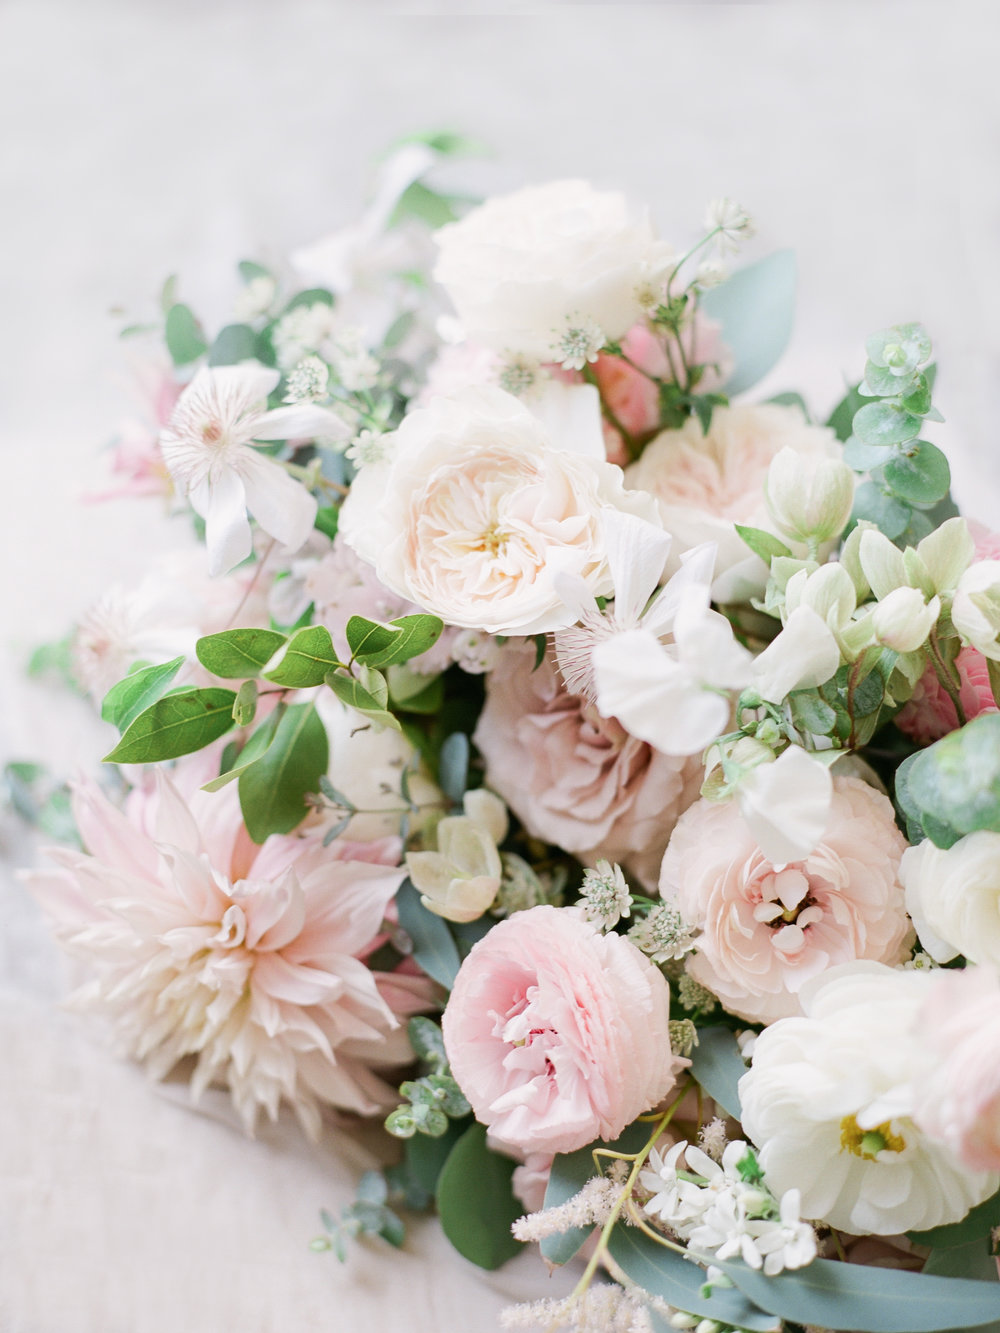 whiteandblushbouquet.jpg